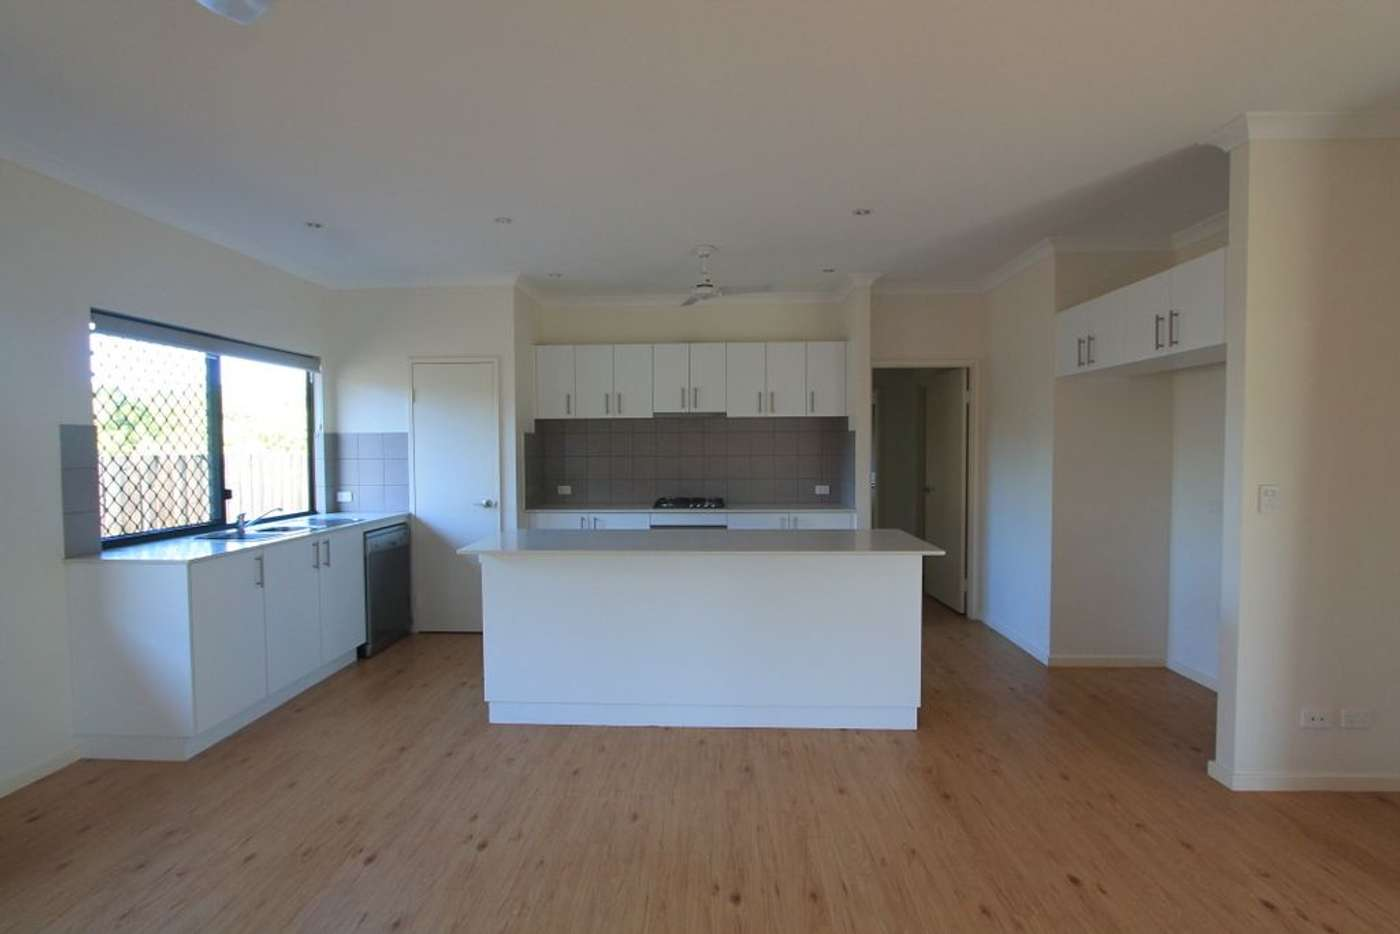 Main view of Homely house listing, 9 Durack Crescent, Broome WA 6725